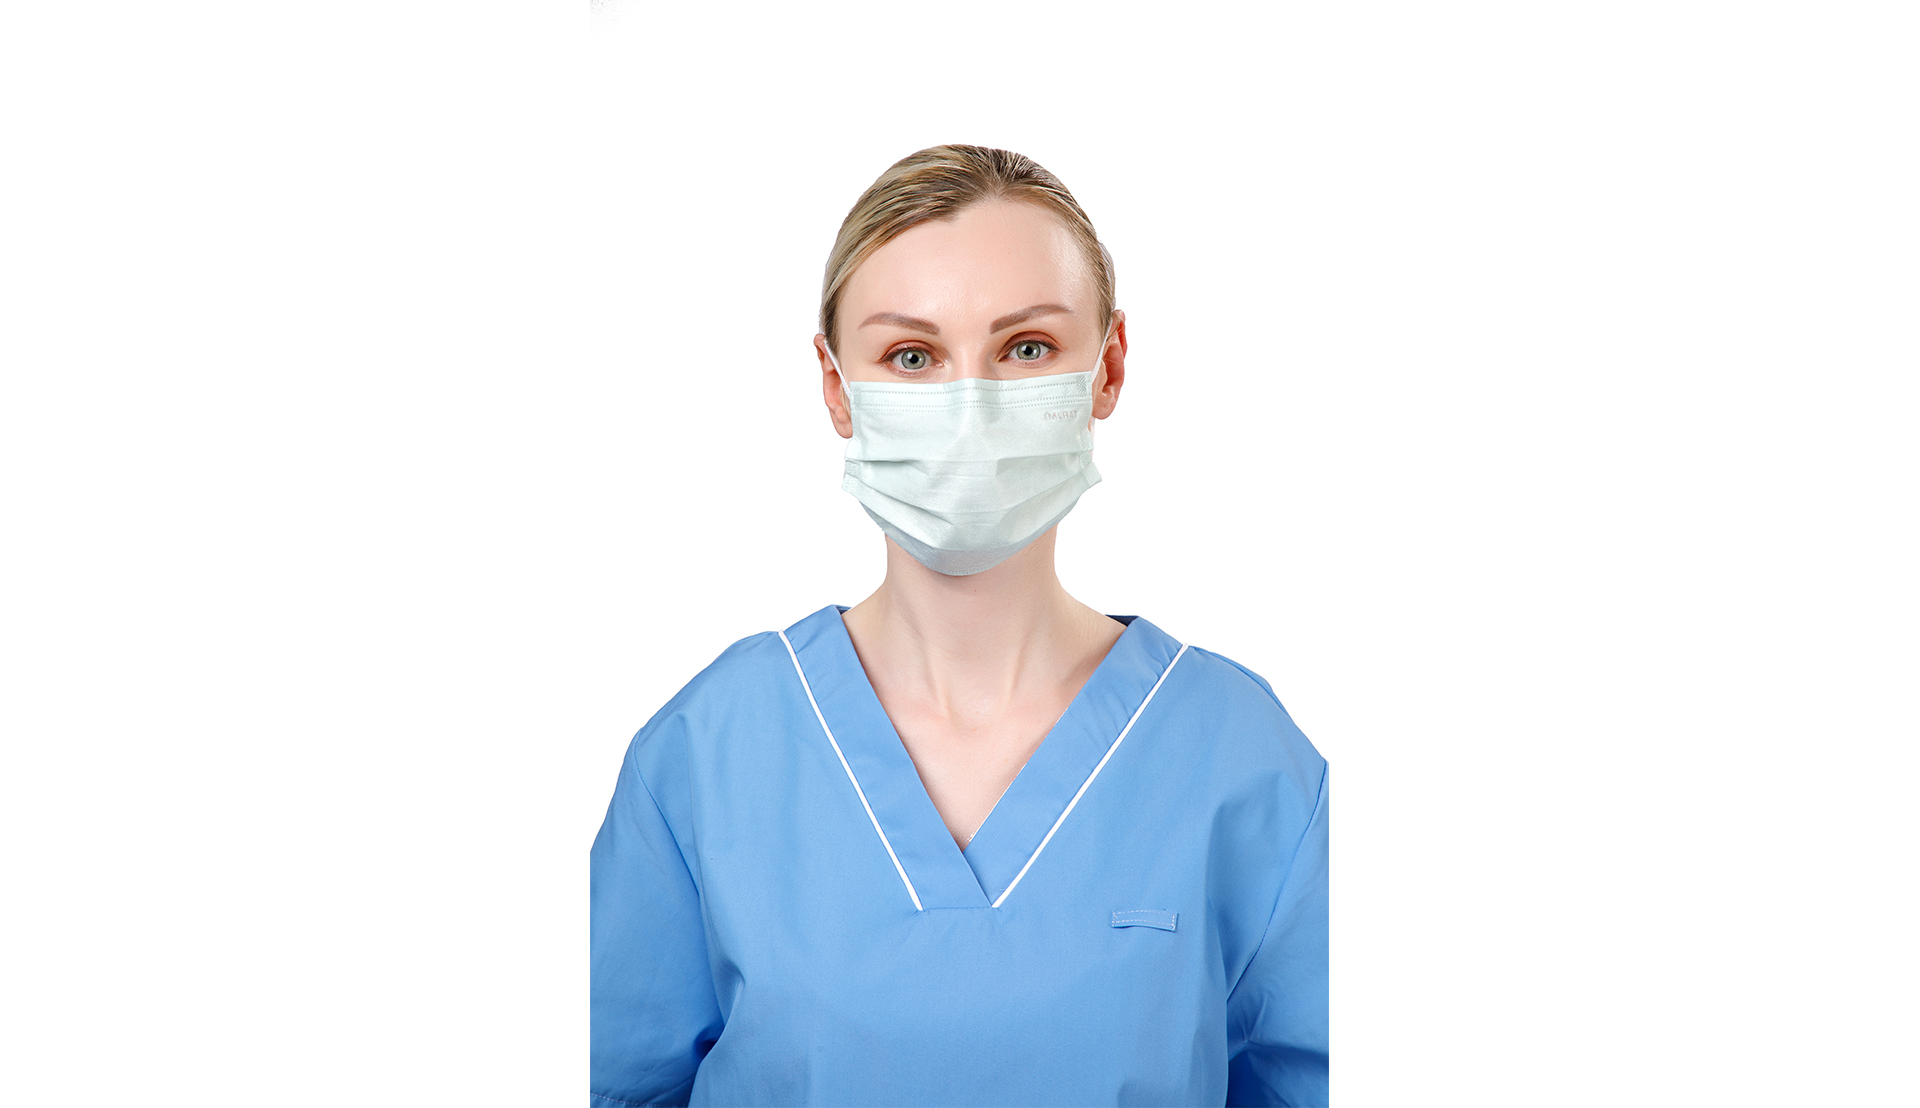 ASTM F2100 LEVEL 1 Surgical Mask with Ear Loops